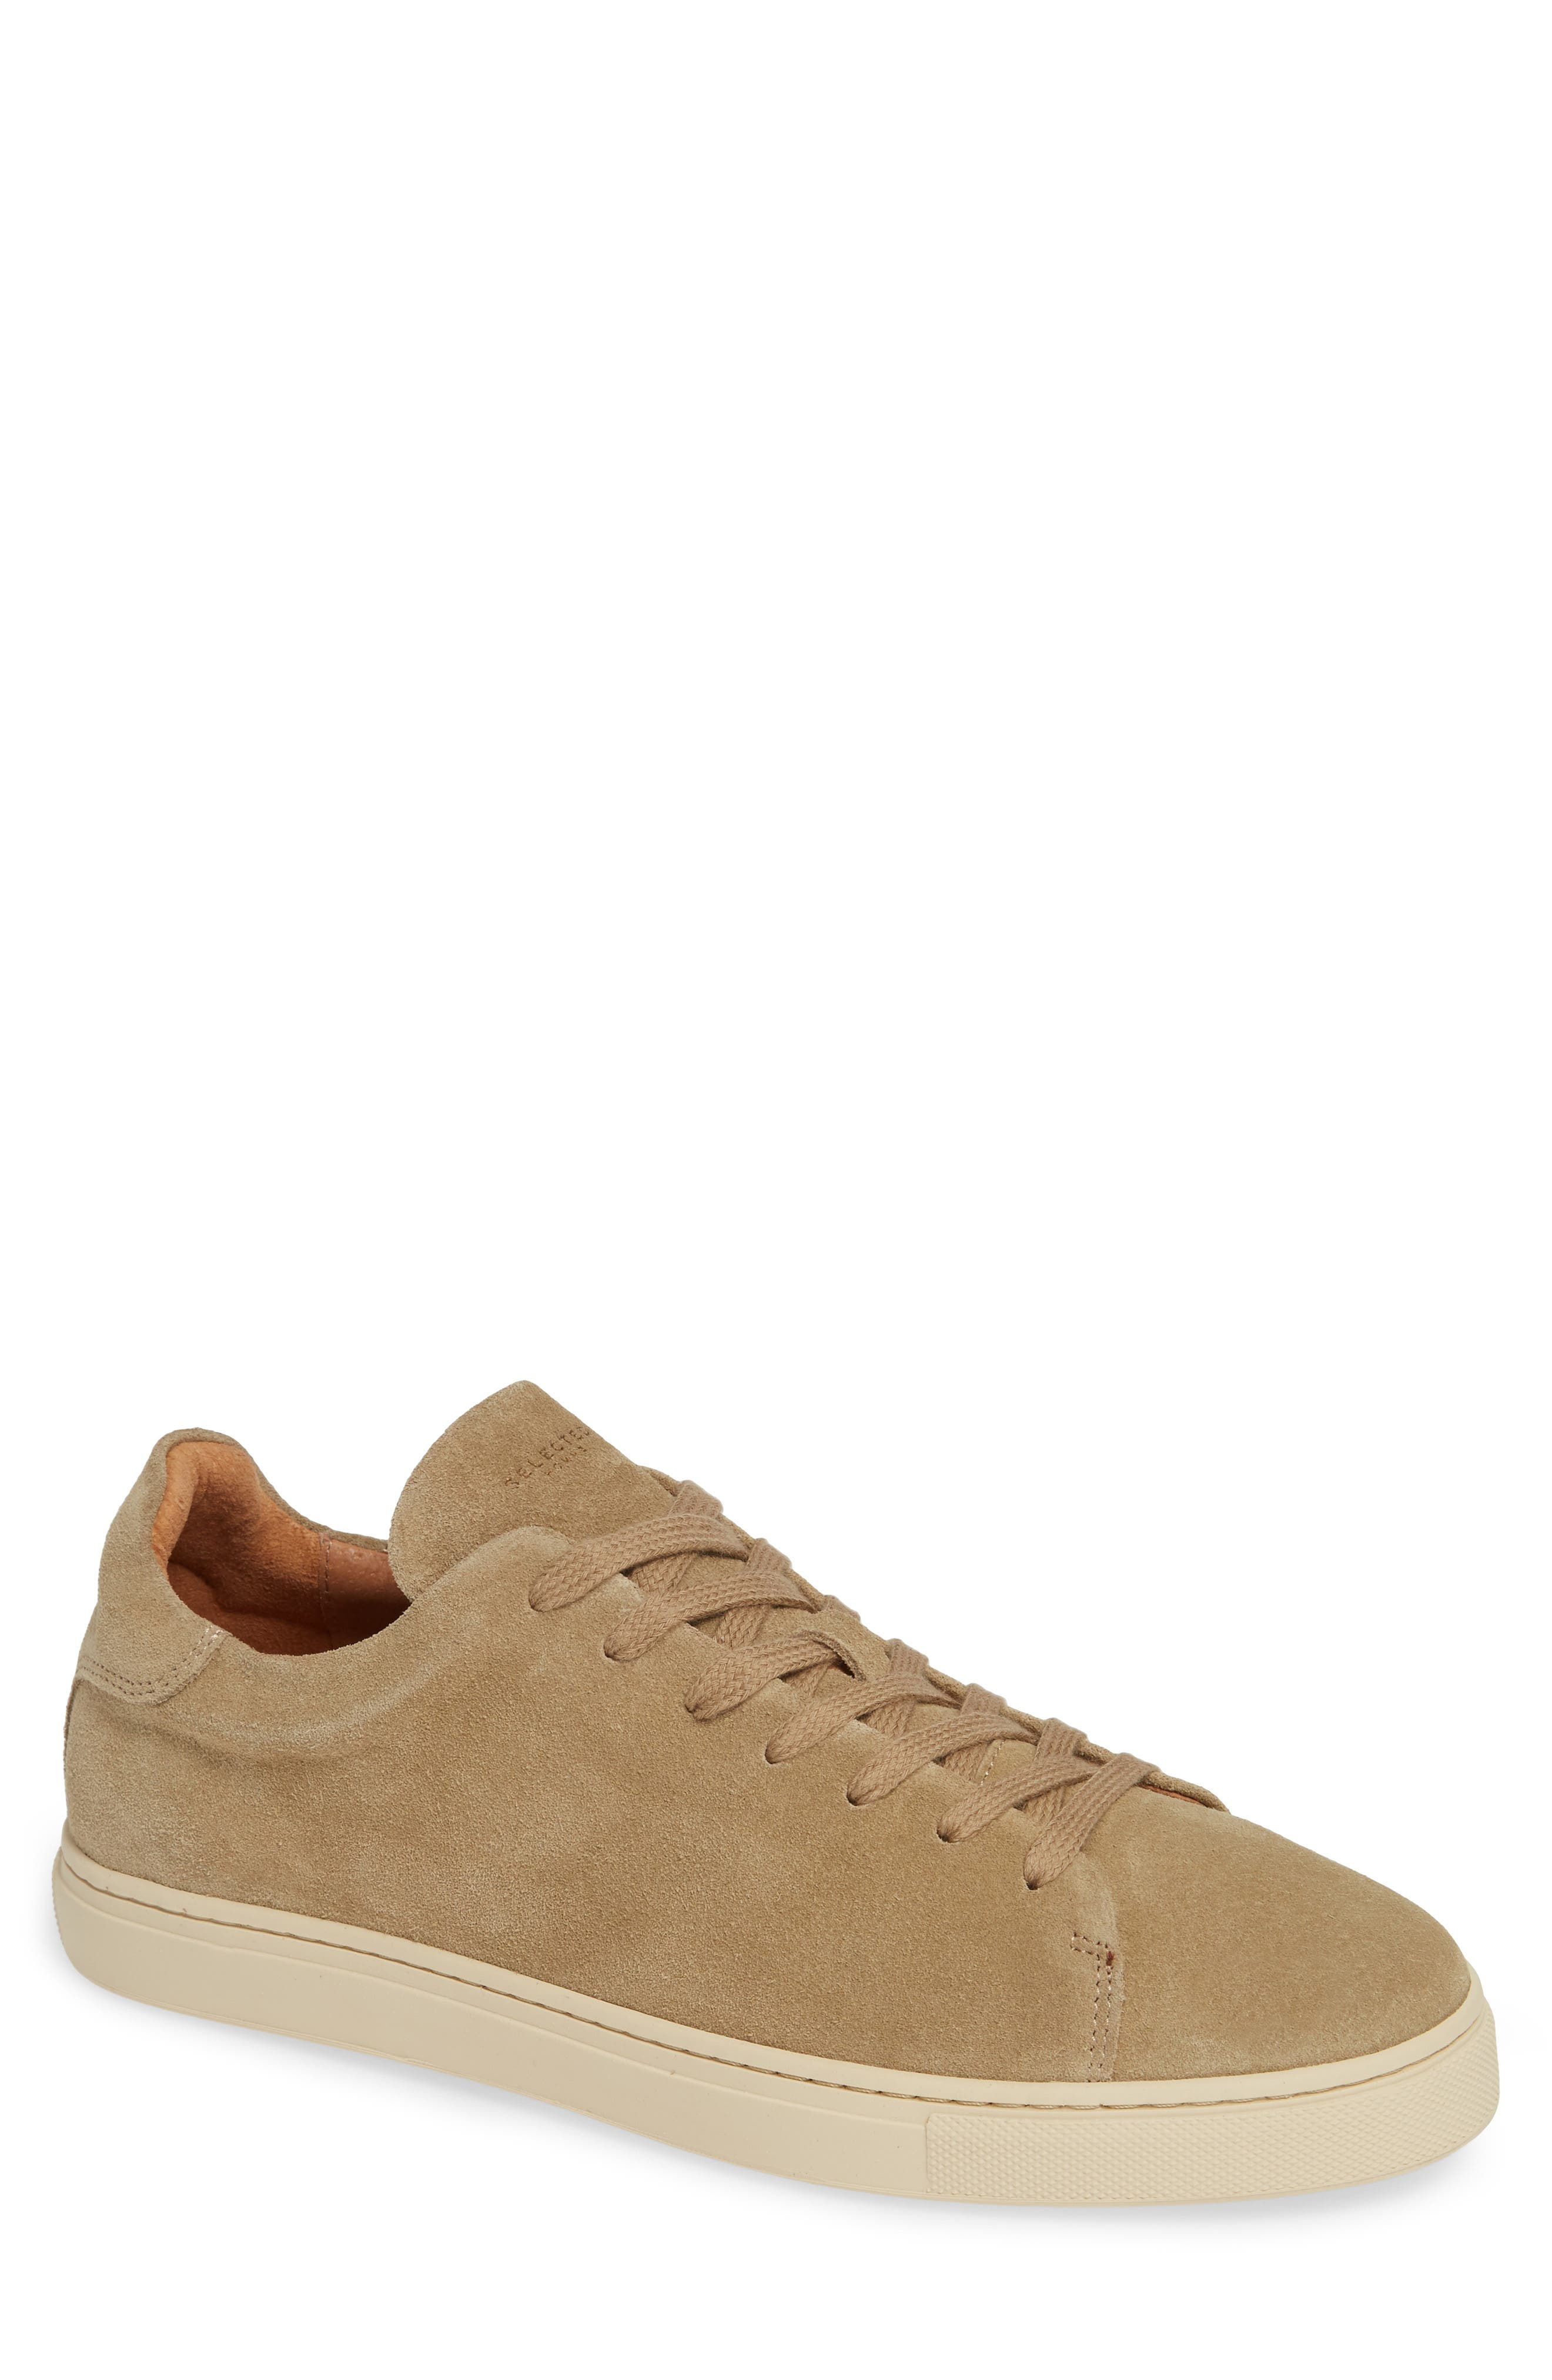 Selected Home David Low Top Sneaker,                         Main,                         color, SAND SUEDE